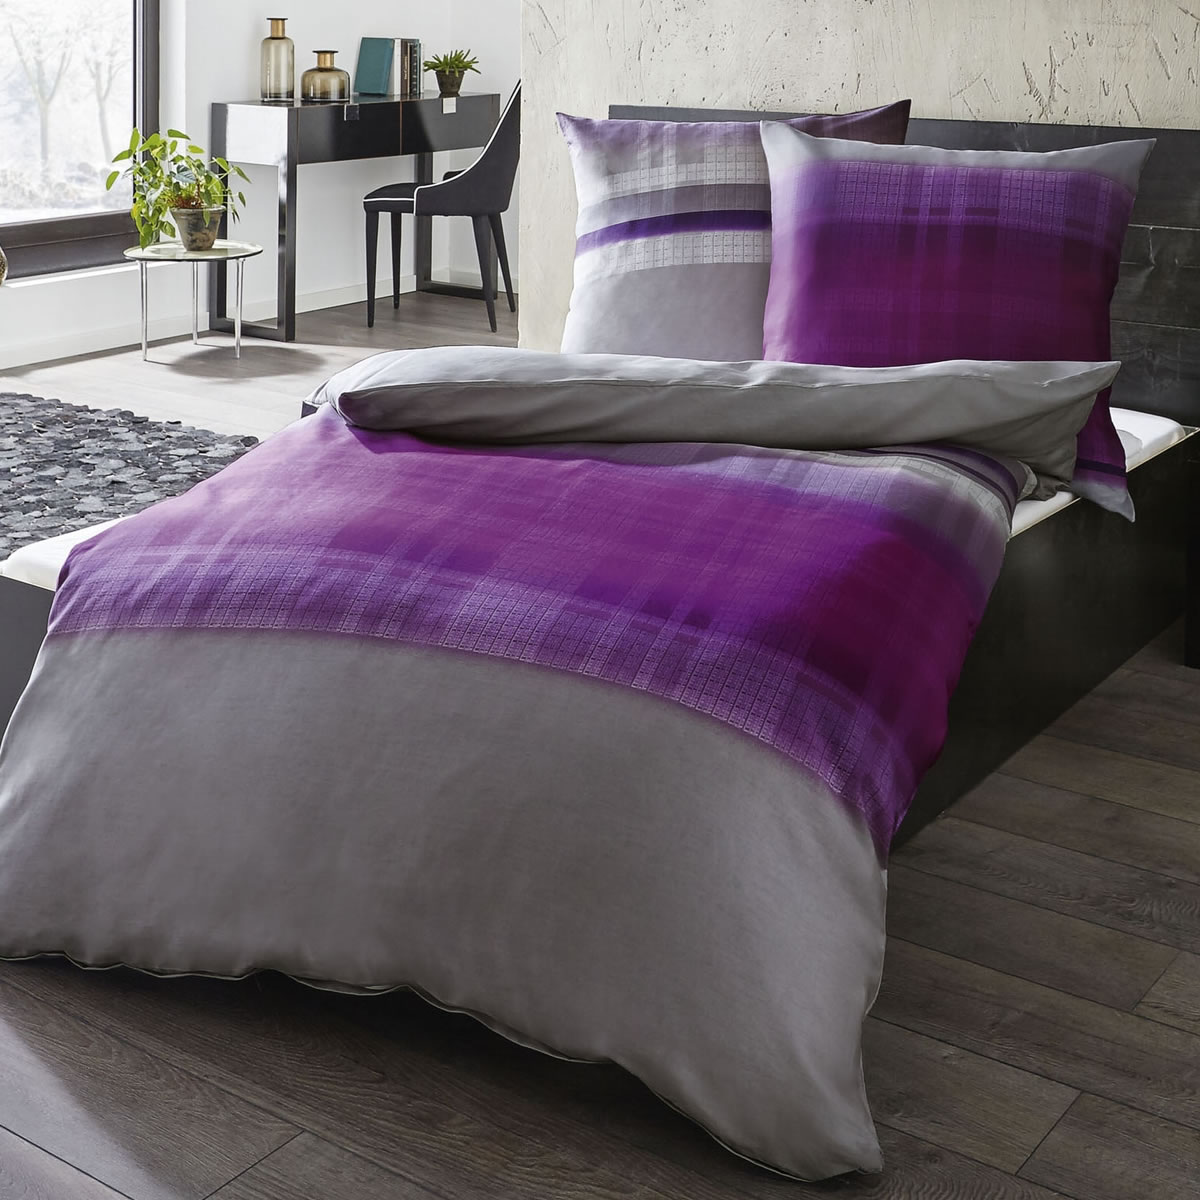 kaeppel mako satin bettw sche 135x200 cm trace 61055 aubergine lila. Black Bedroom Furniture Sets. Home Design Ideas